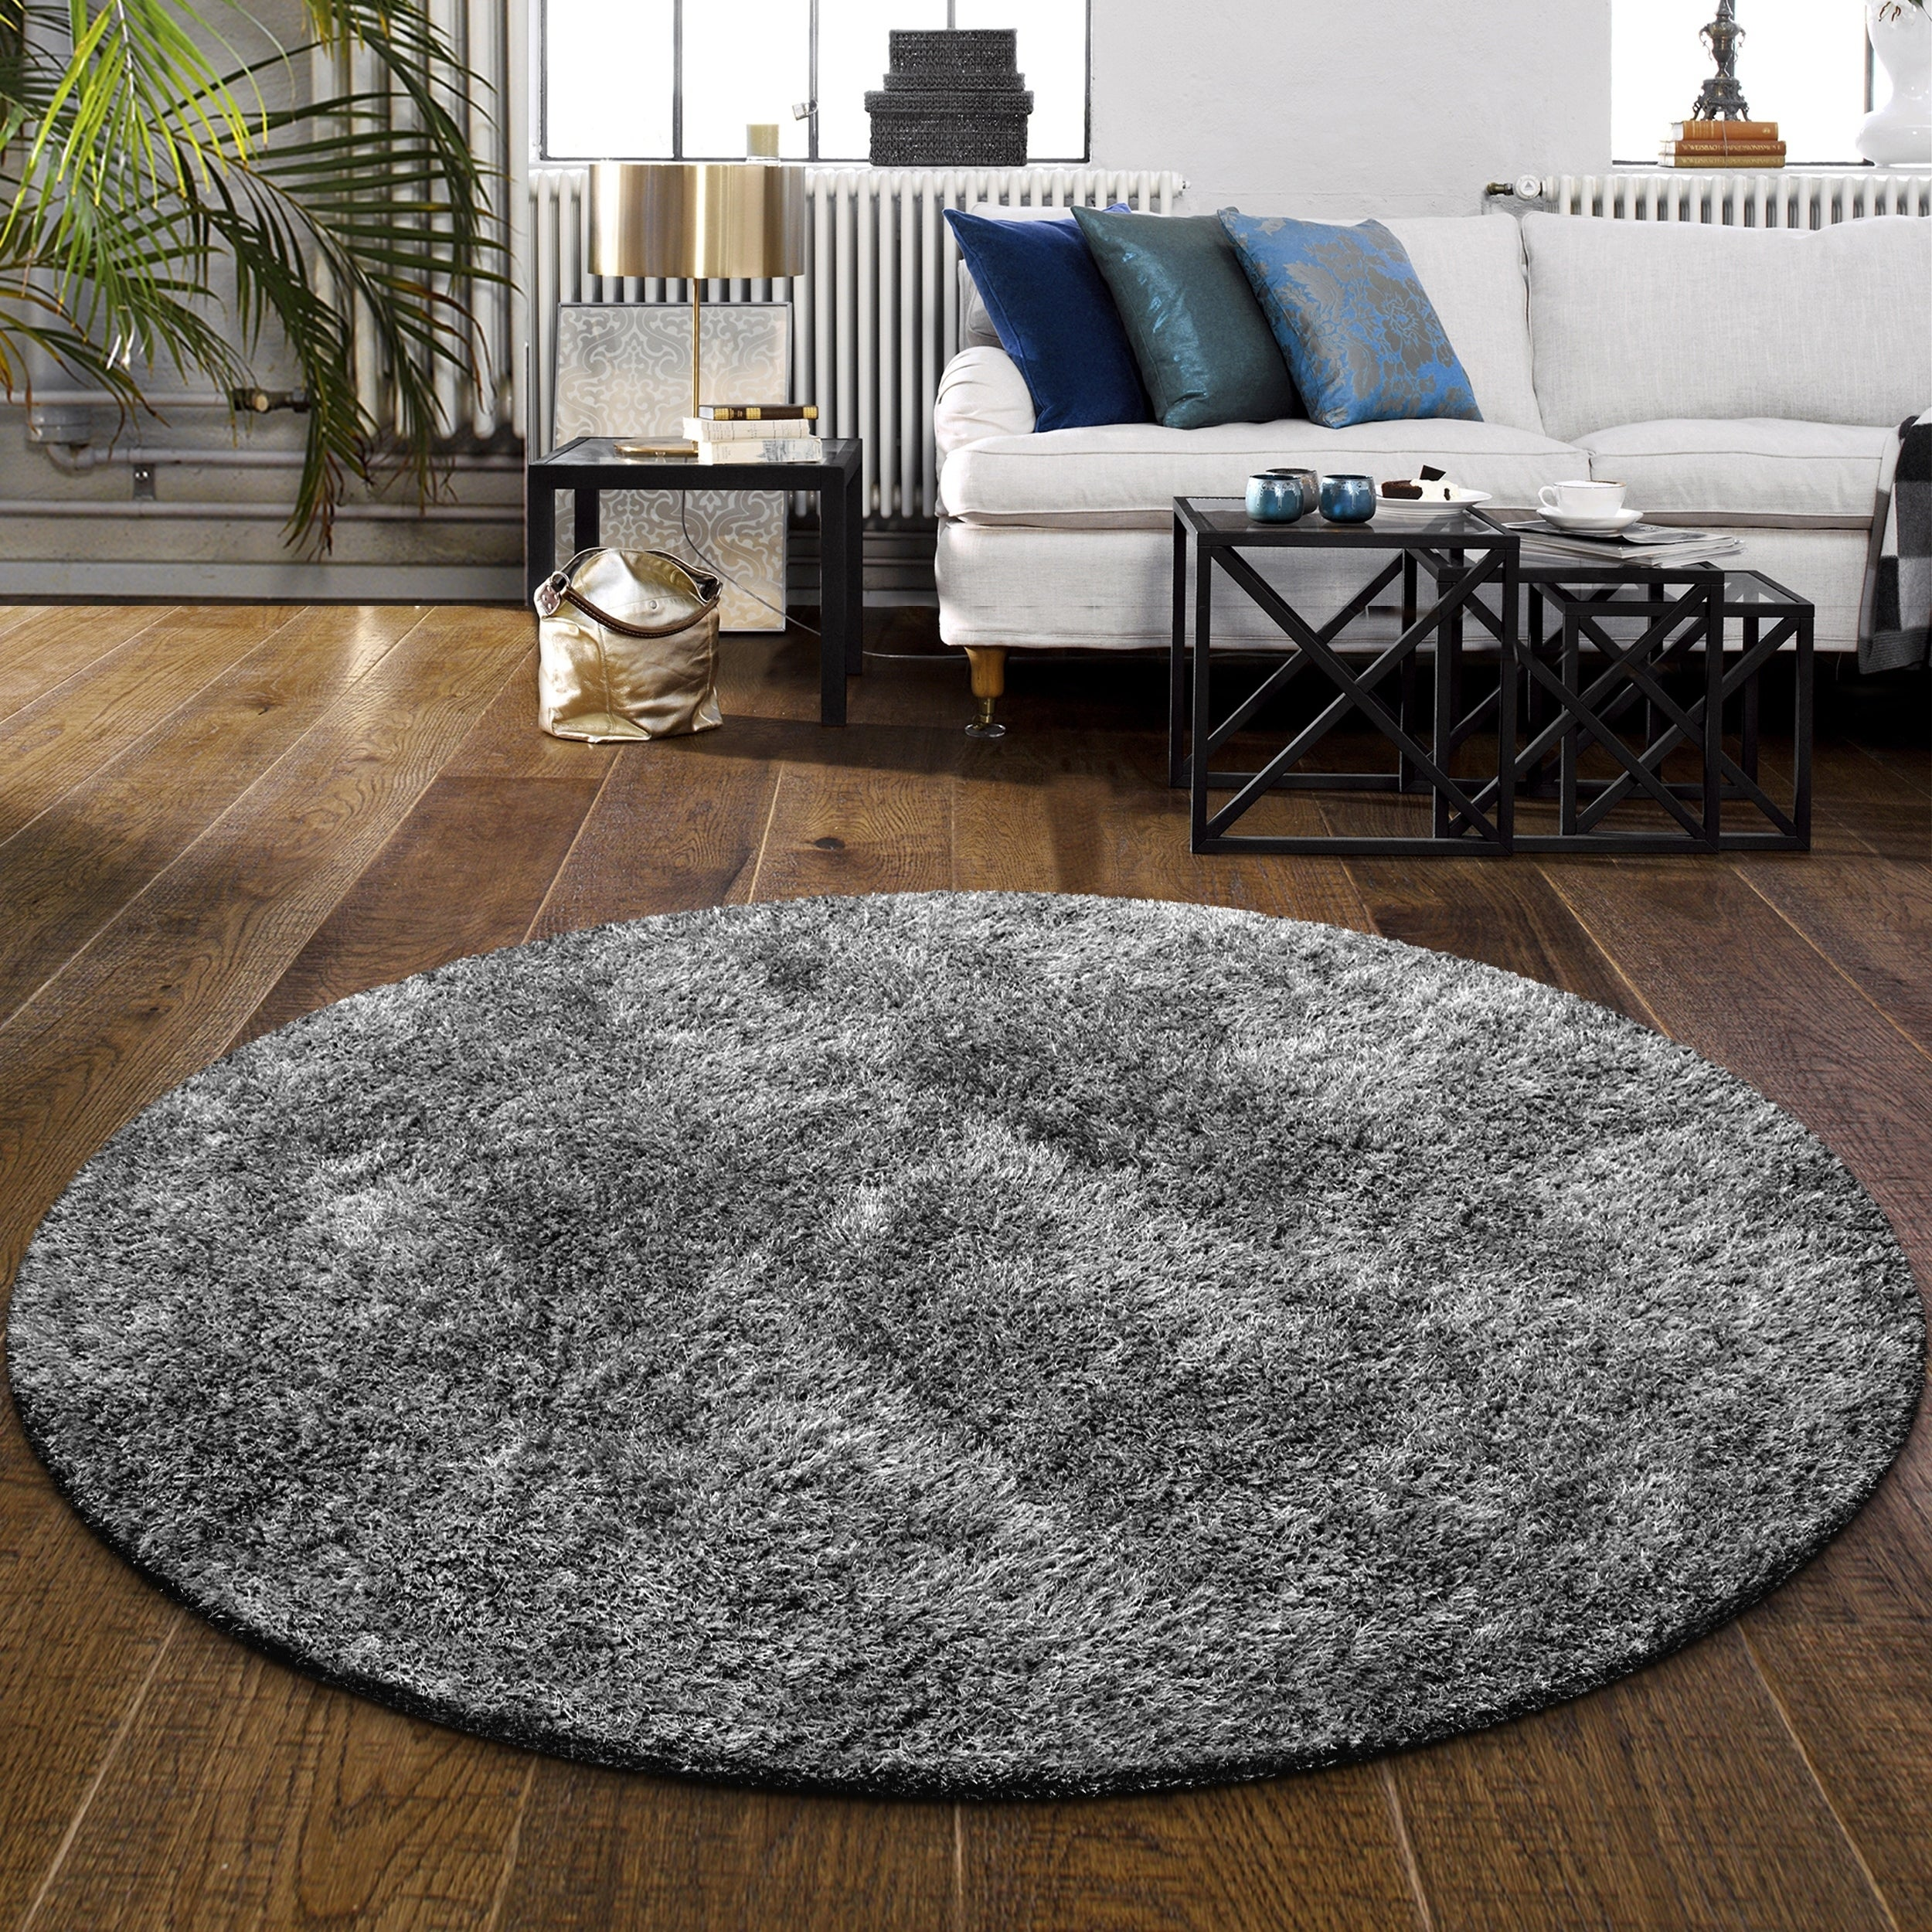 Cozy And Hand Woven Round Shag Rug